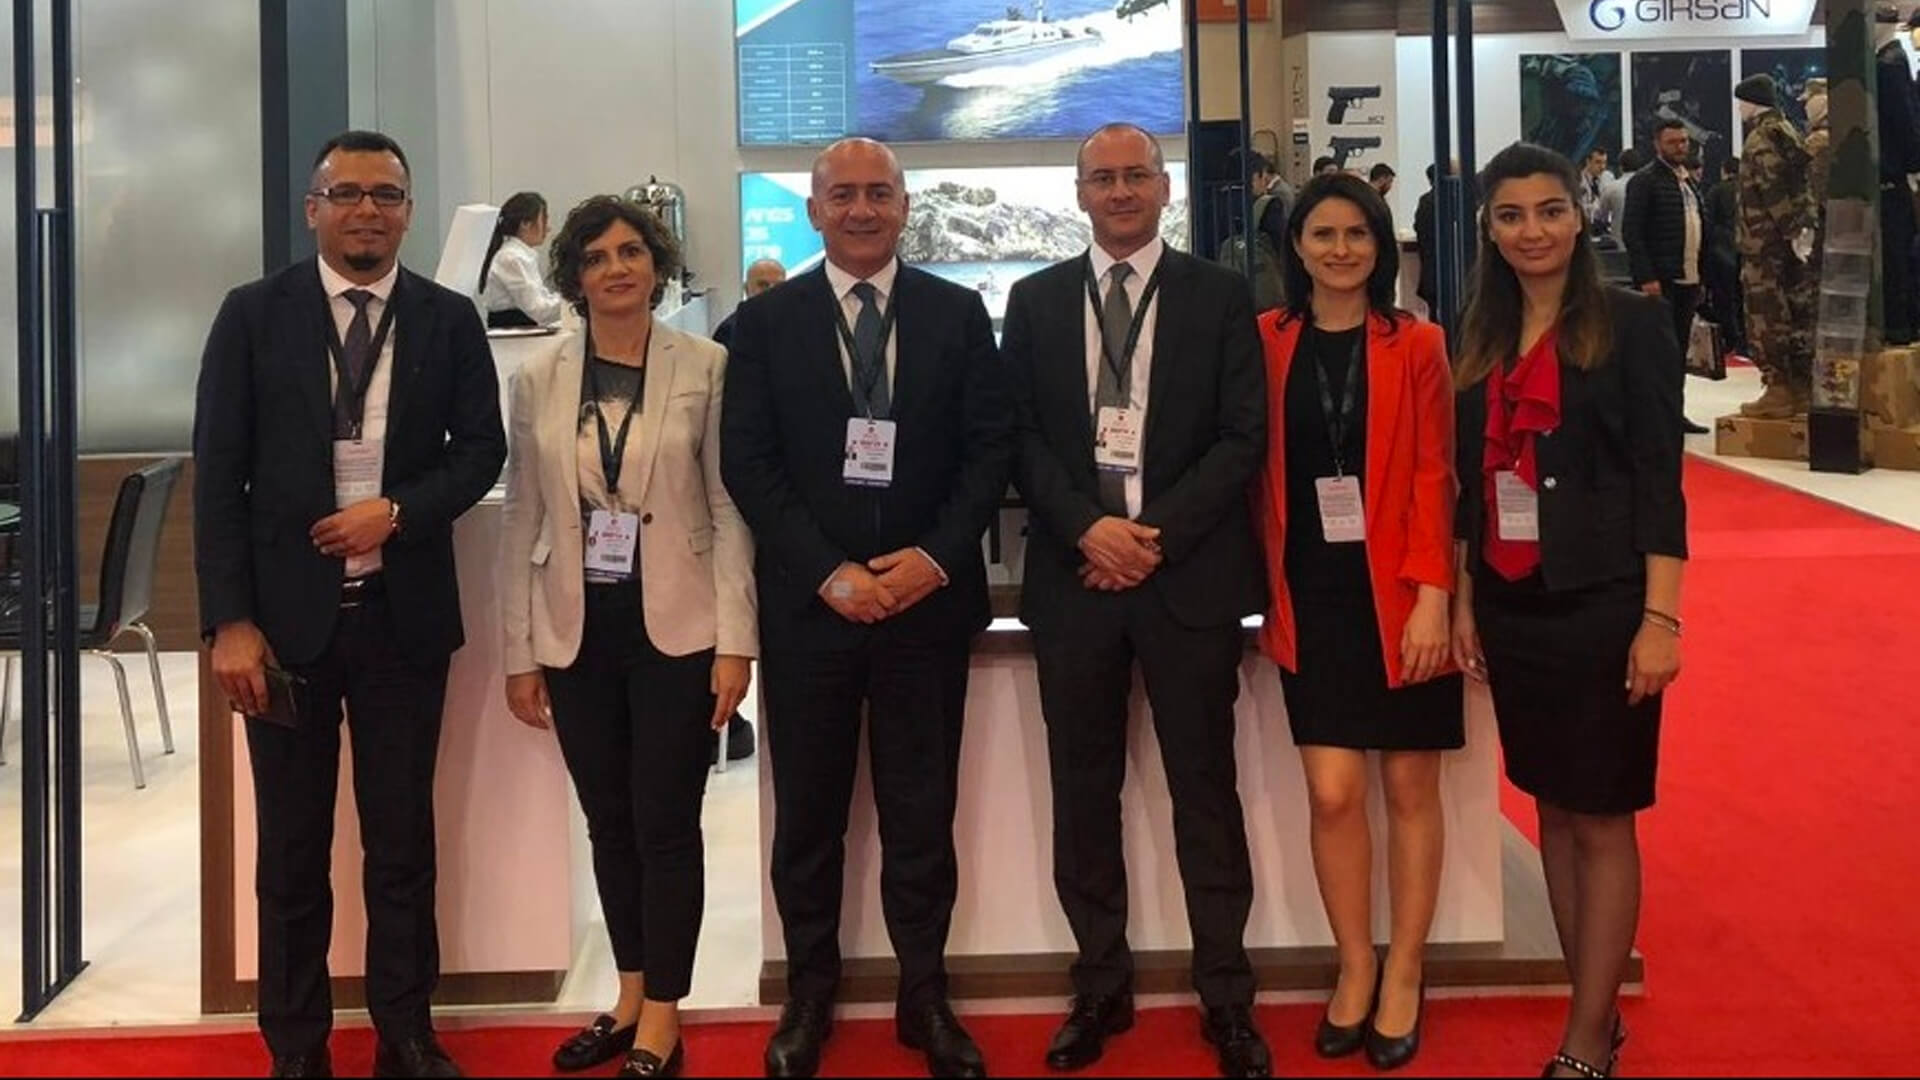 https://ares.global/images/news/archive/2019-05-10.jpg